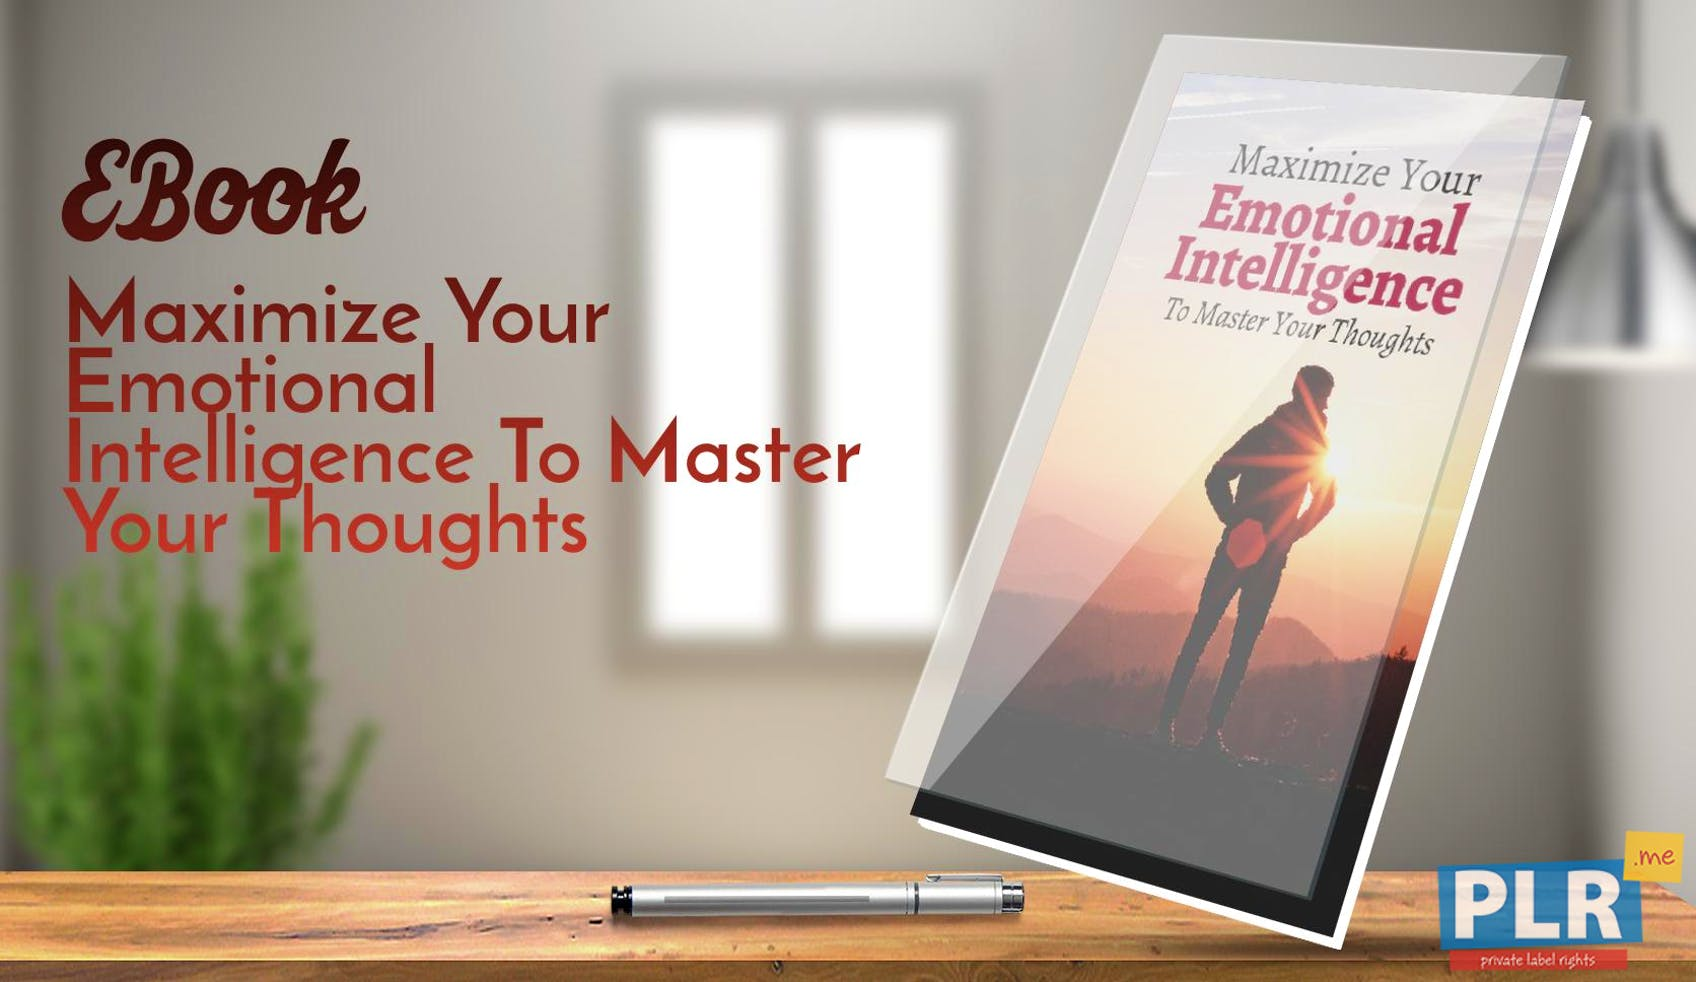 Maximize Your Emotional Intelligence To Master Your Thoughts